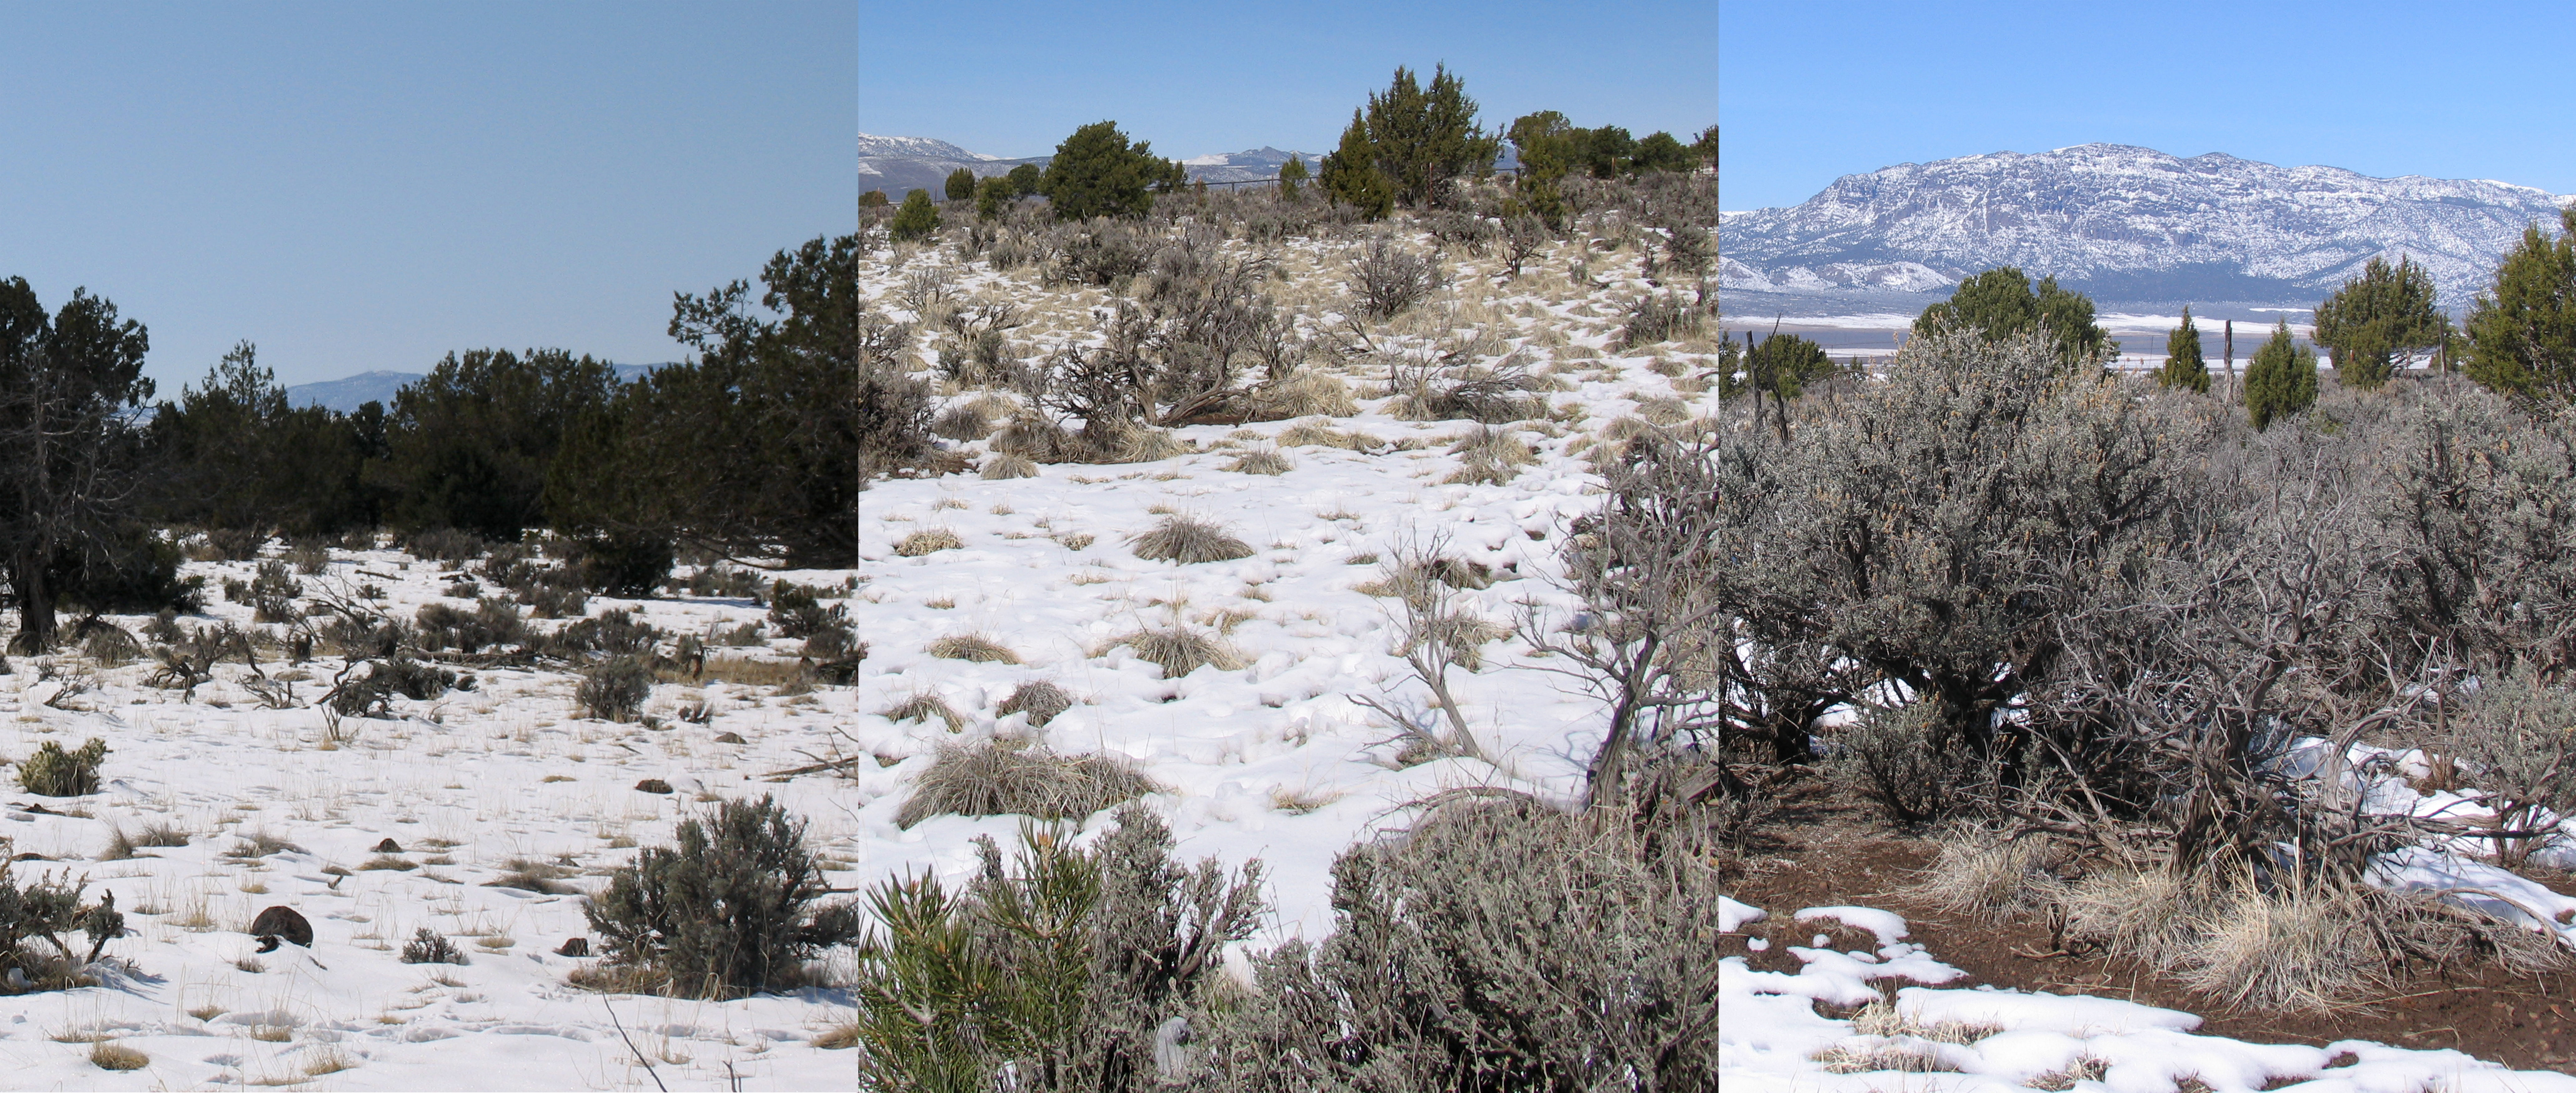 Left: Open to all grazing. Center: Rabbits-only grazing. Right: No grazing. Paragonah staging area, Paragonah, Utah, March 5, 2015 | Photo by Carin Miller, St. George News